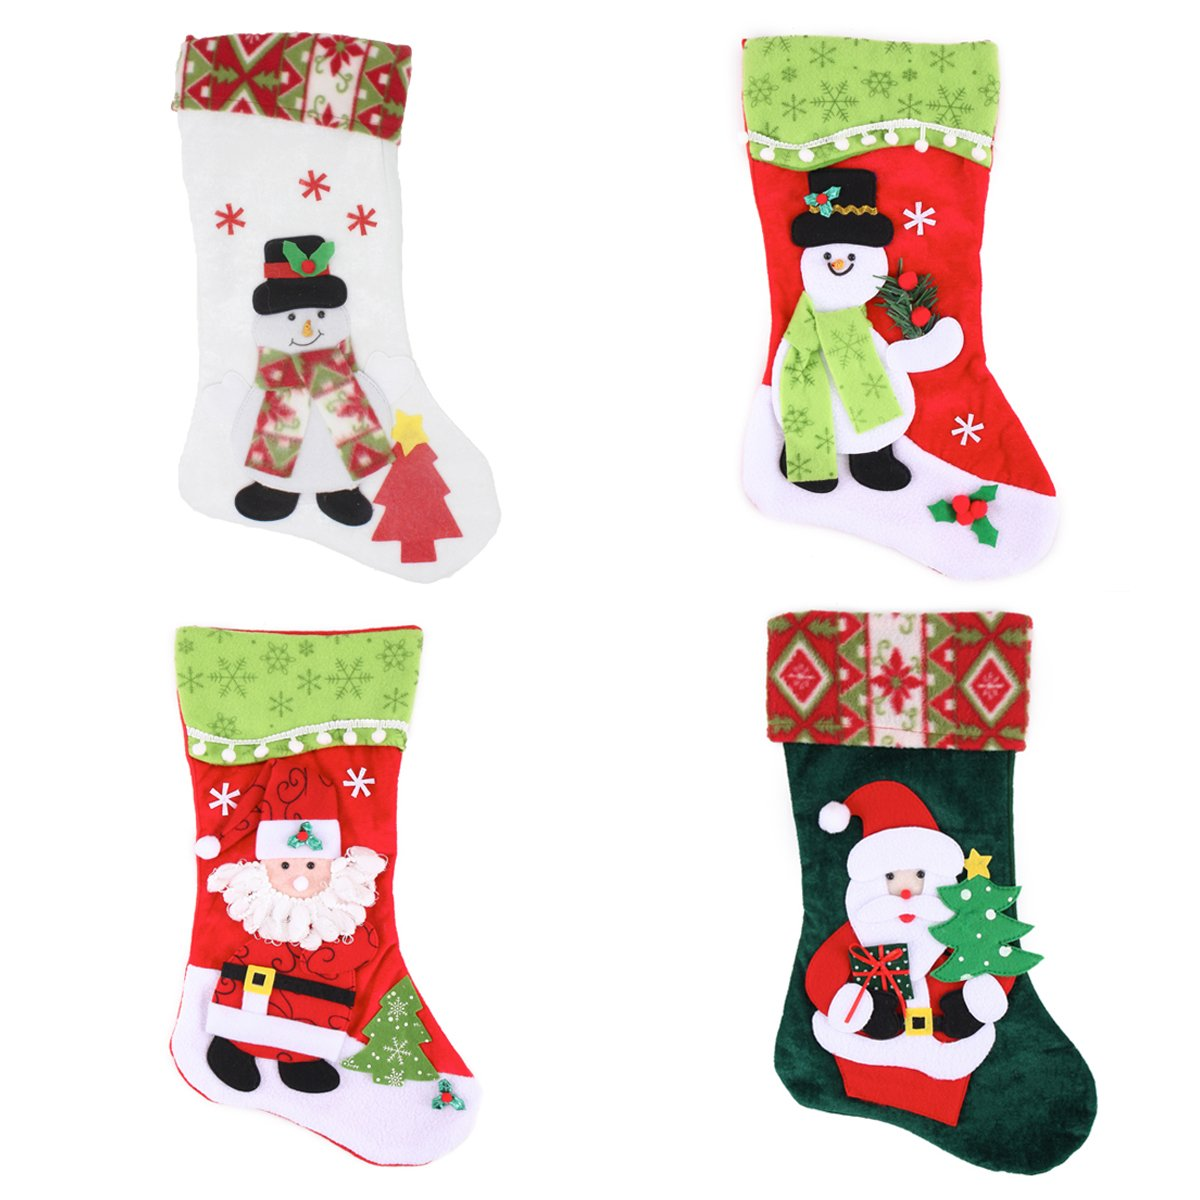 Pack of 4 18 3D Plush Christmas Stockings for Christmas Decorations by  Joiedomi